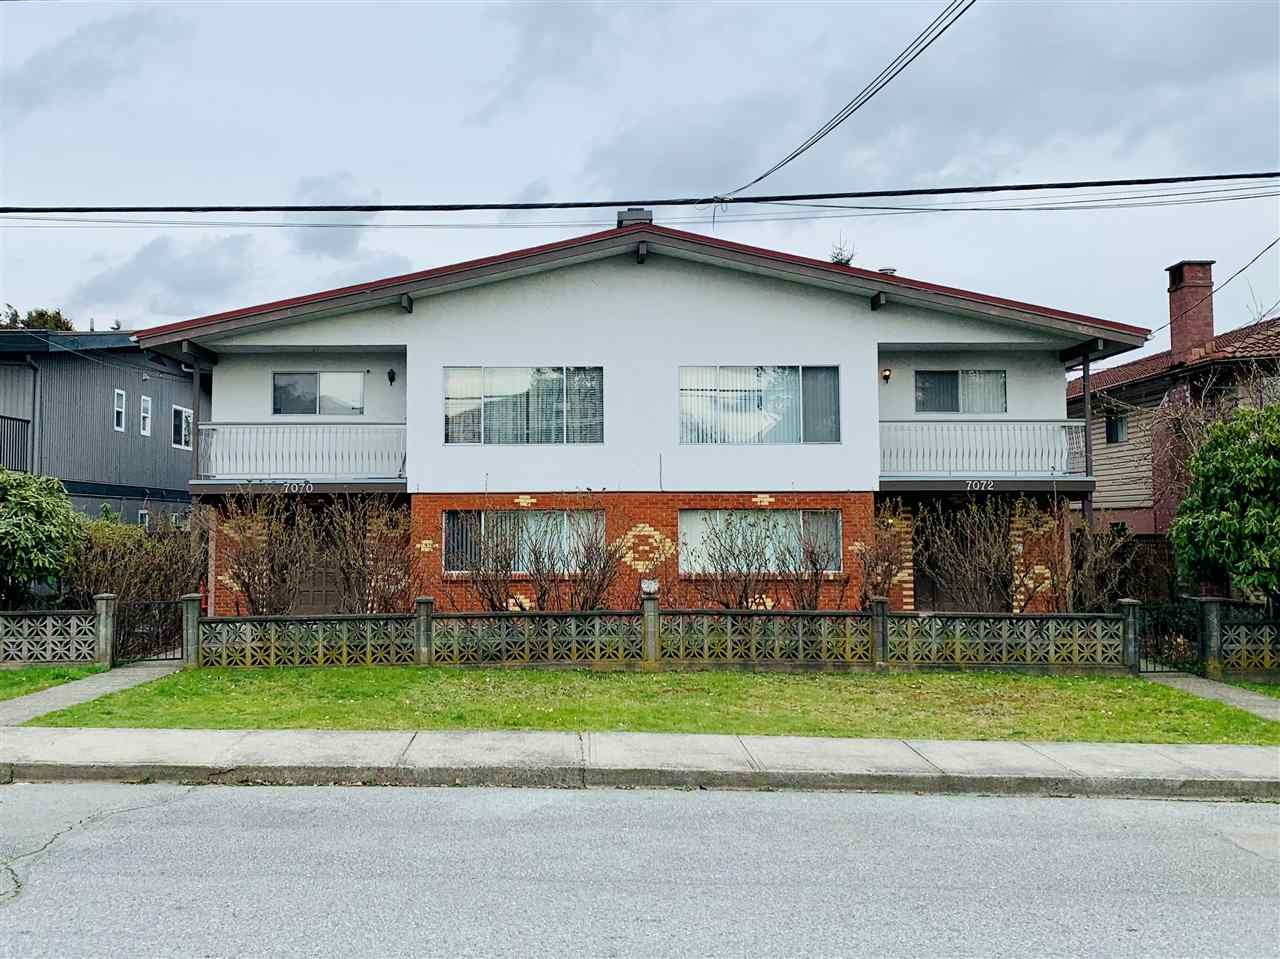 Main Photo: 7070 DUNBLANE Avenue in Burnaby: Metrotown Fourplex for sale (Burnaby South)  : MLS®# R2573843